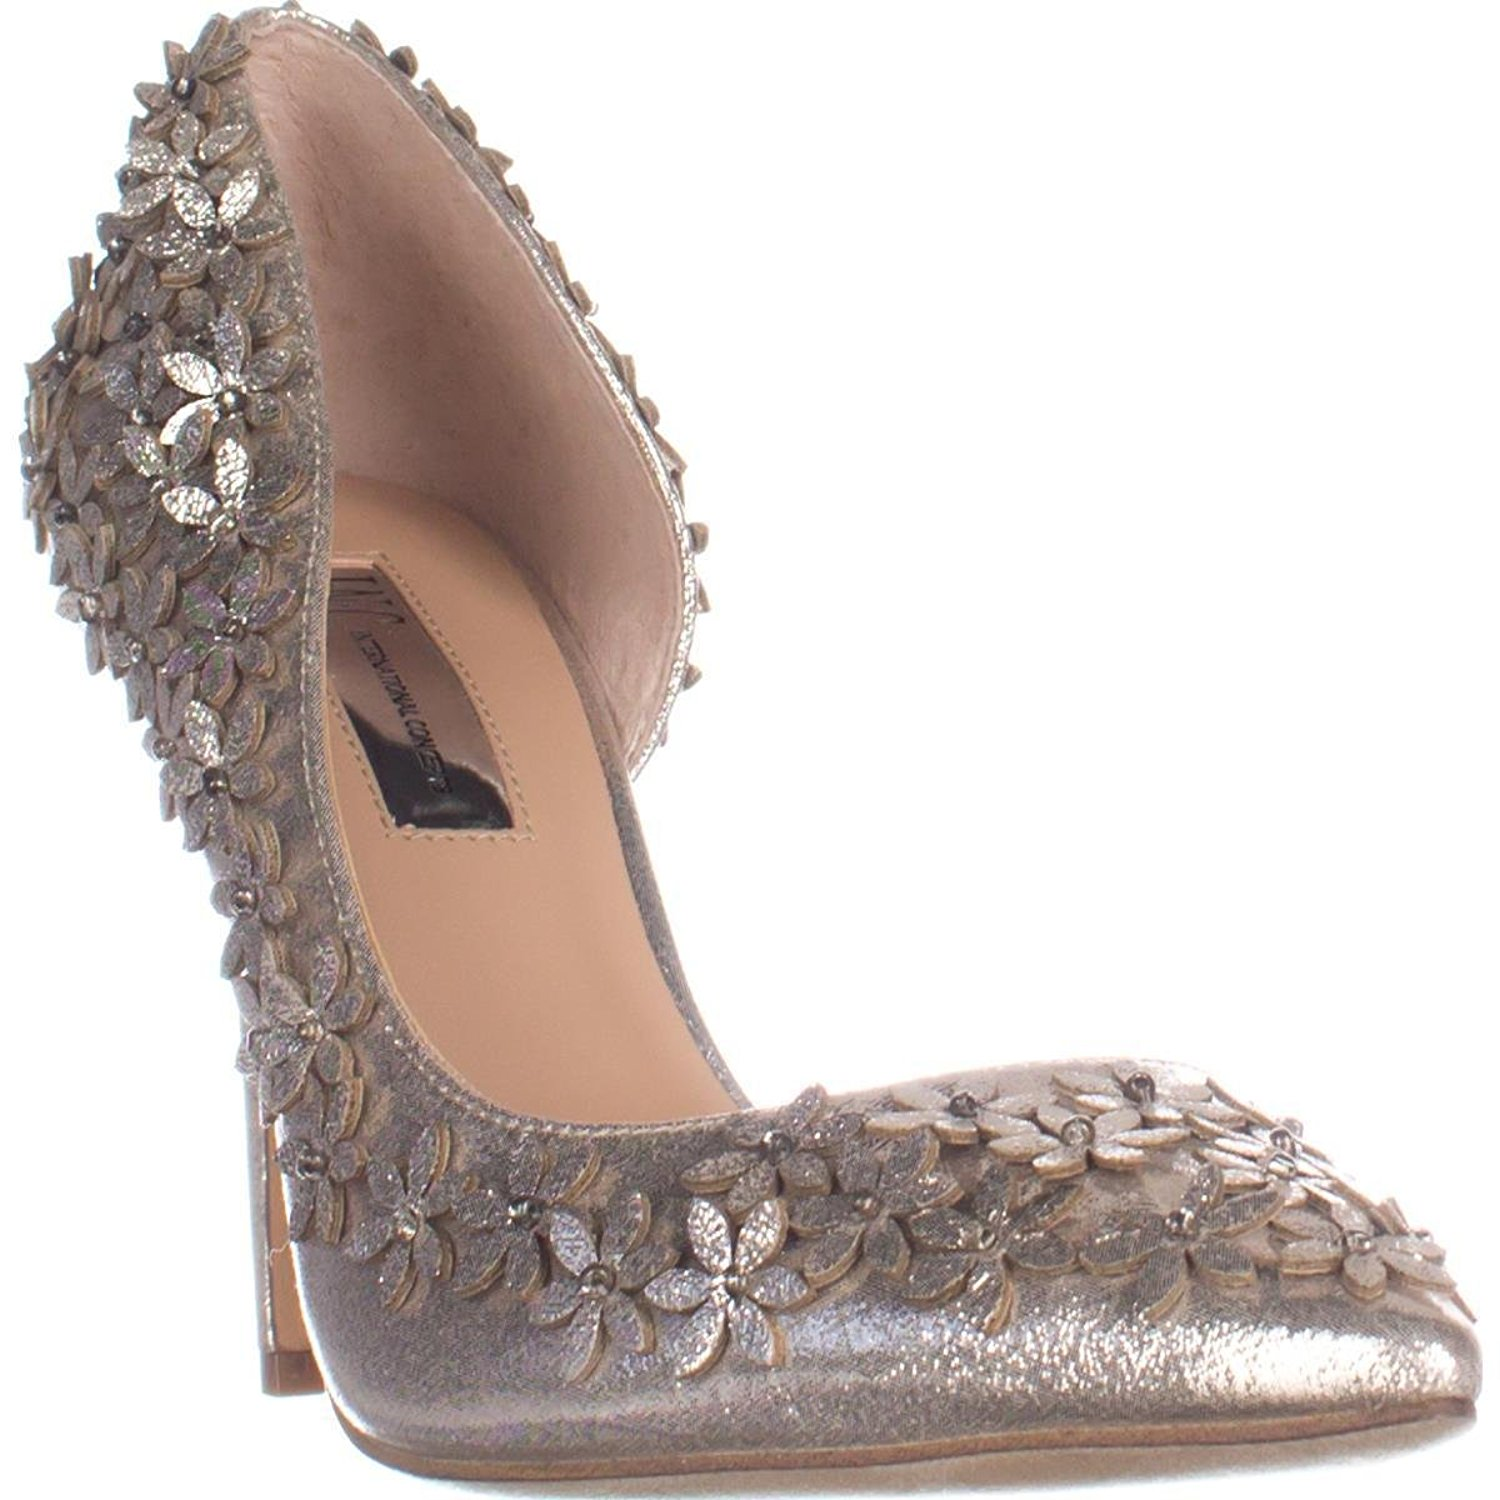 0cb84dc688a Details about INC International Concepts Womens Karley Pointed Toe